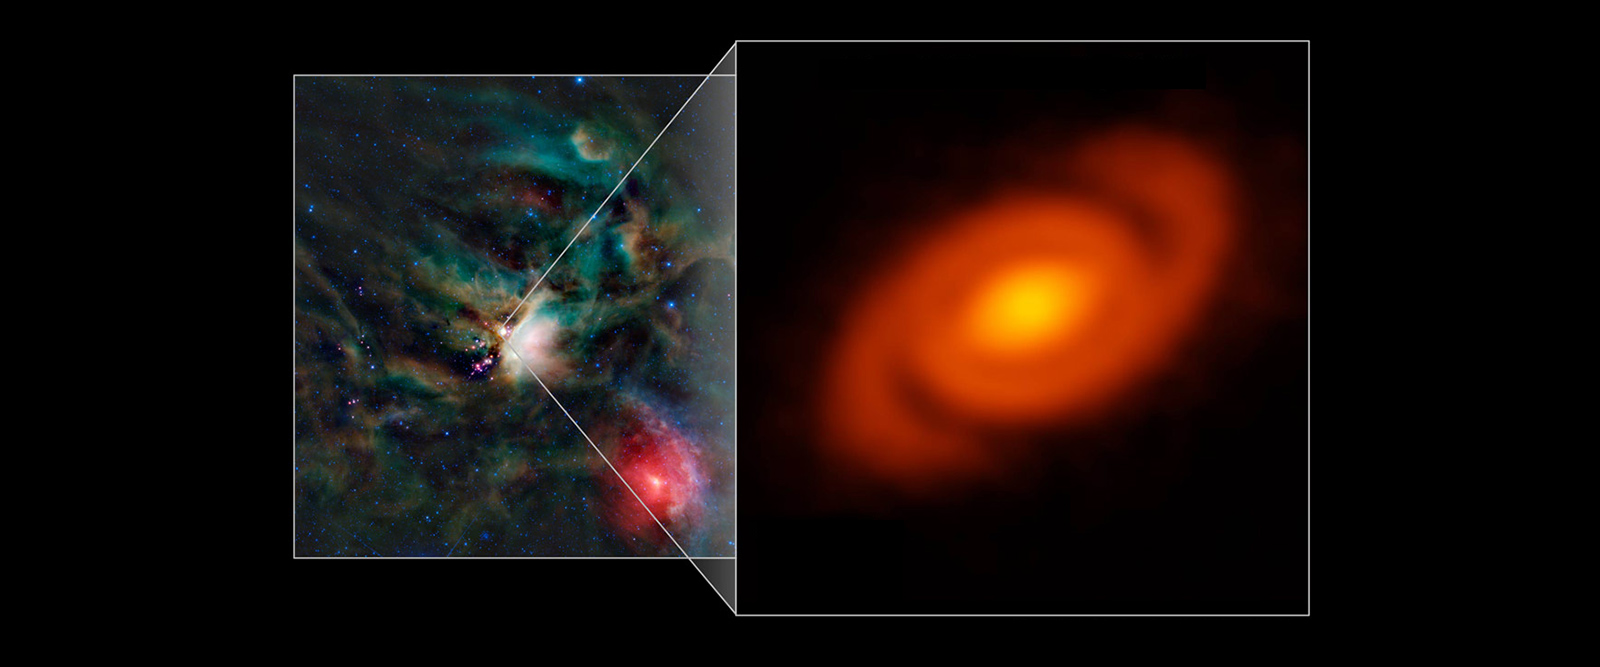 Planet-forming disk has lawn-sprinkler-like spiral arms